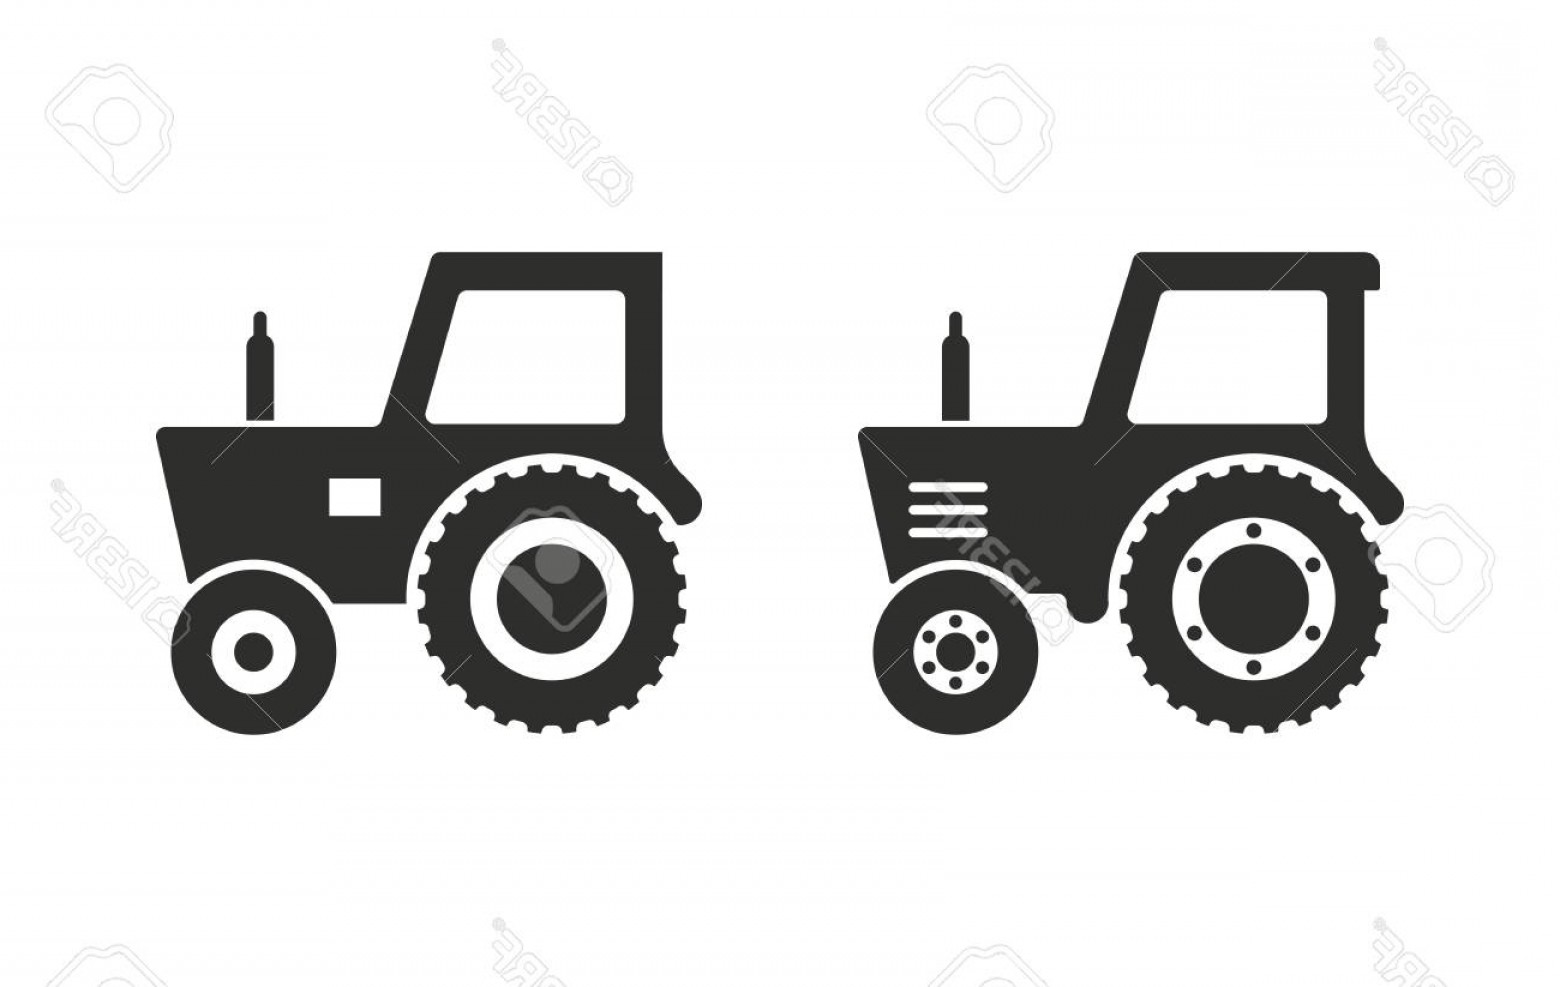 Free Tractor Vector: Photostock Vector Tractor Vector Icon Black Illustration Isolated On White Background For Graphic And Web Design